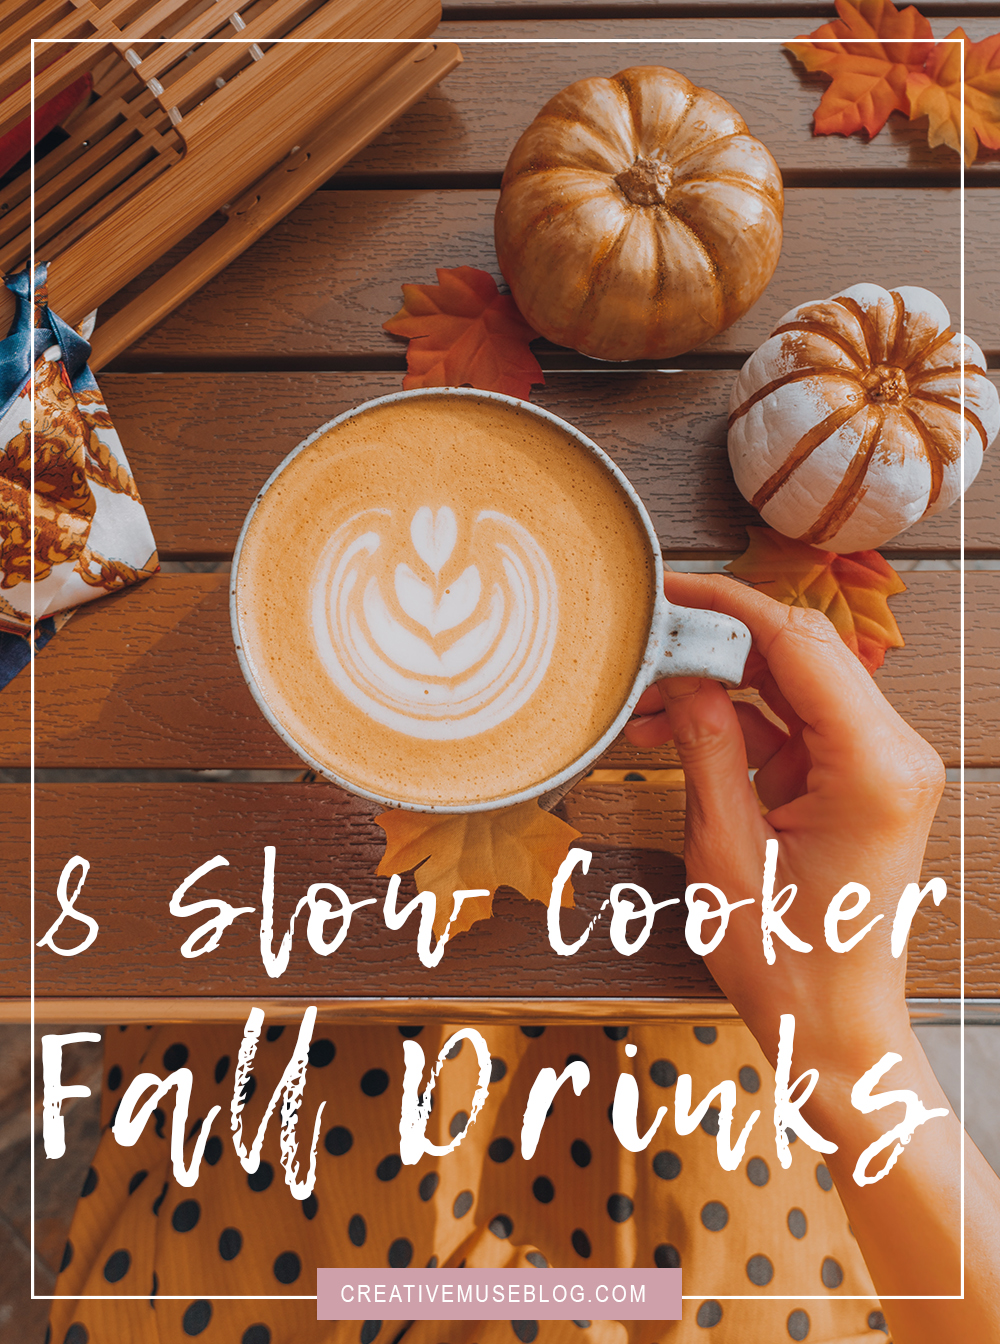 Slow Cooker Fall Drink Recipes | Pumpkin Spiced Latte | Almond Milk Chai Latte | Pumpkin White Hot Chocolate | Gingerbread Latte | Salted Caramel Hot Chocolate | Caramel Apple Cider | Hot Chocolate | Gingerbread Hot Chocolate | Easy Cooking | Holiday Recipe Ideas | New Wife Blog